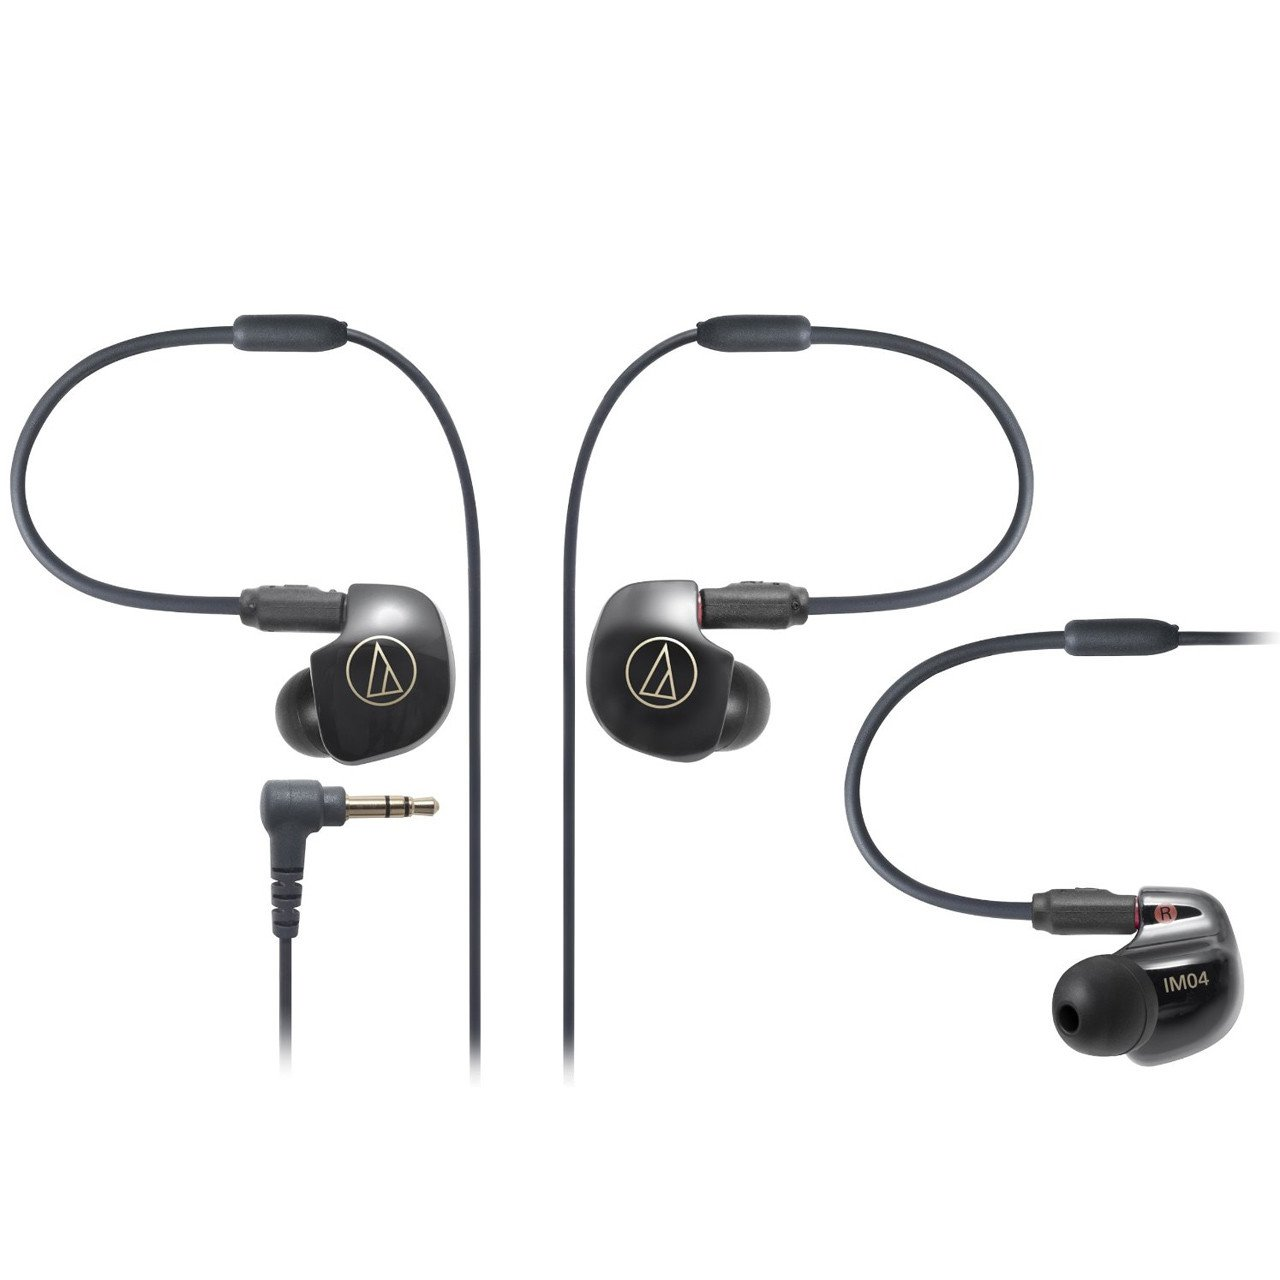 Audio-Technica ATH-IM04 in-ear monitors with quad balanced armature drivers